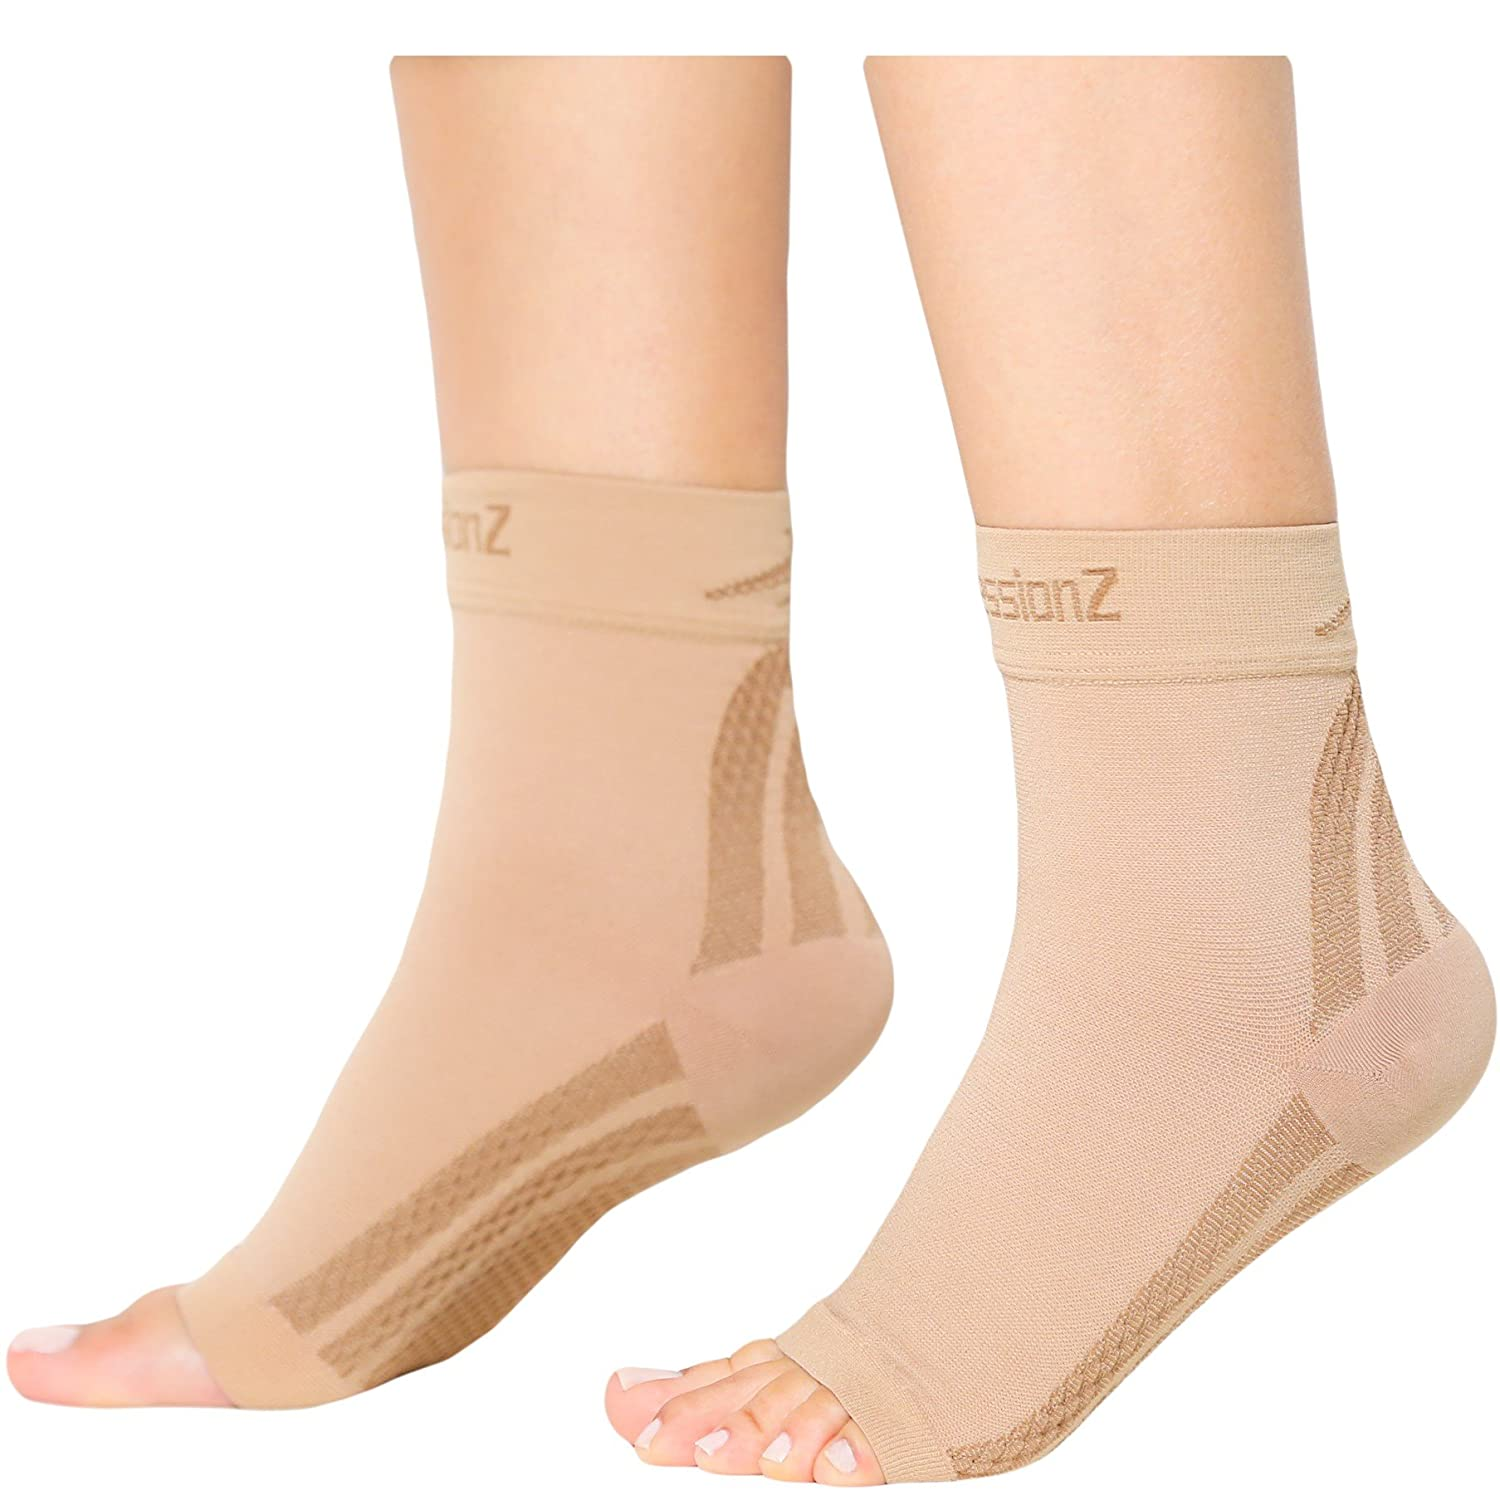 6cec9ddc1f Amazon.com: CompressionZ Plantar Fasciitis Socks - Compression Foot Sleeves  - Ankle Brace w/Arch Support - Pain Relief for Heel Spurs, Edema, ...